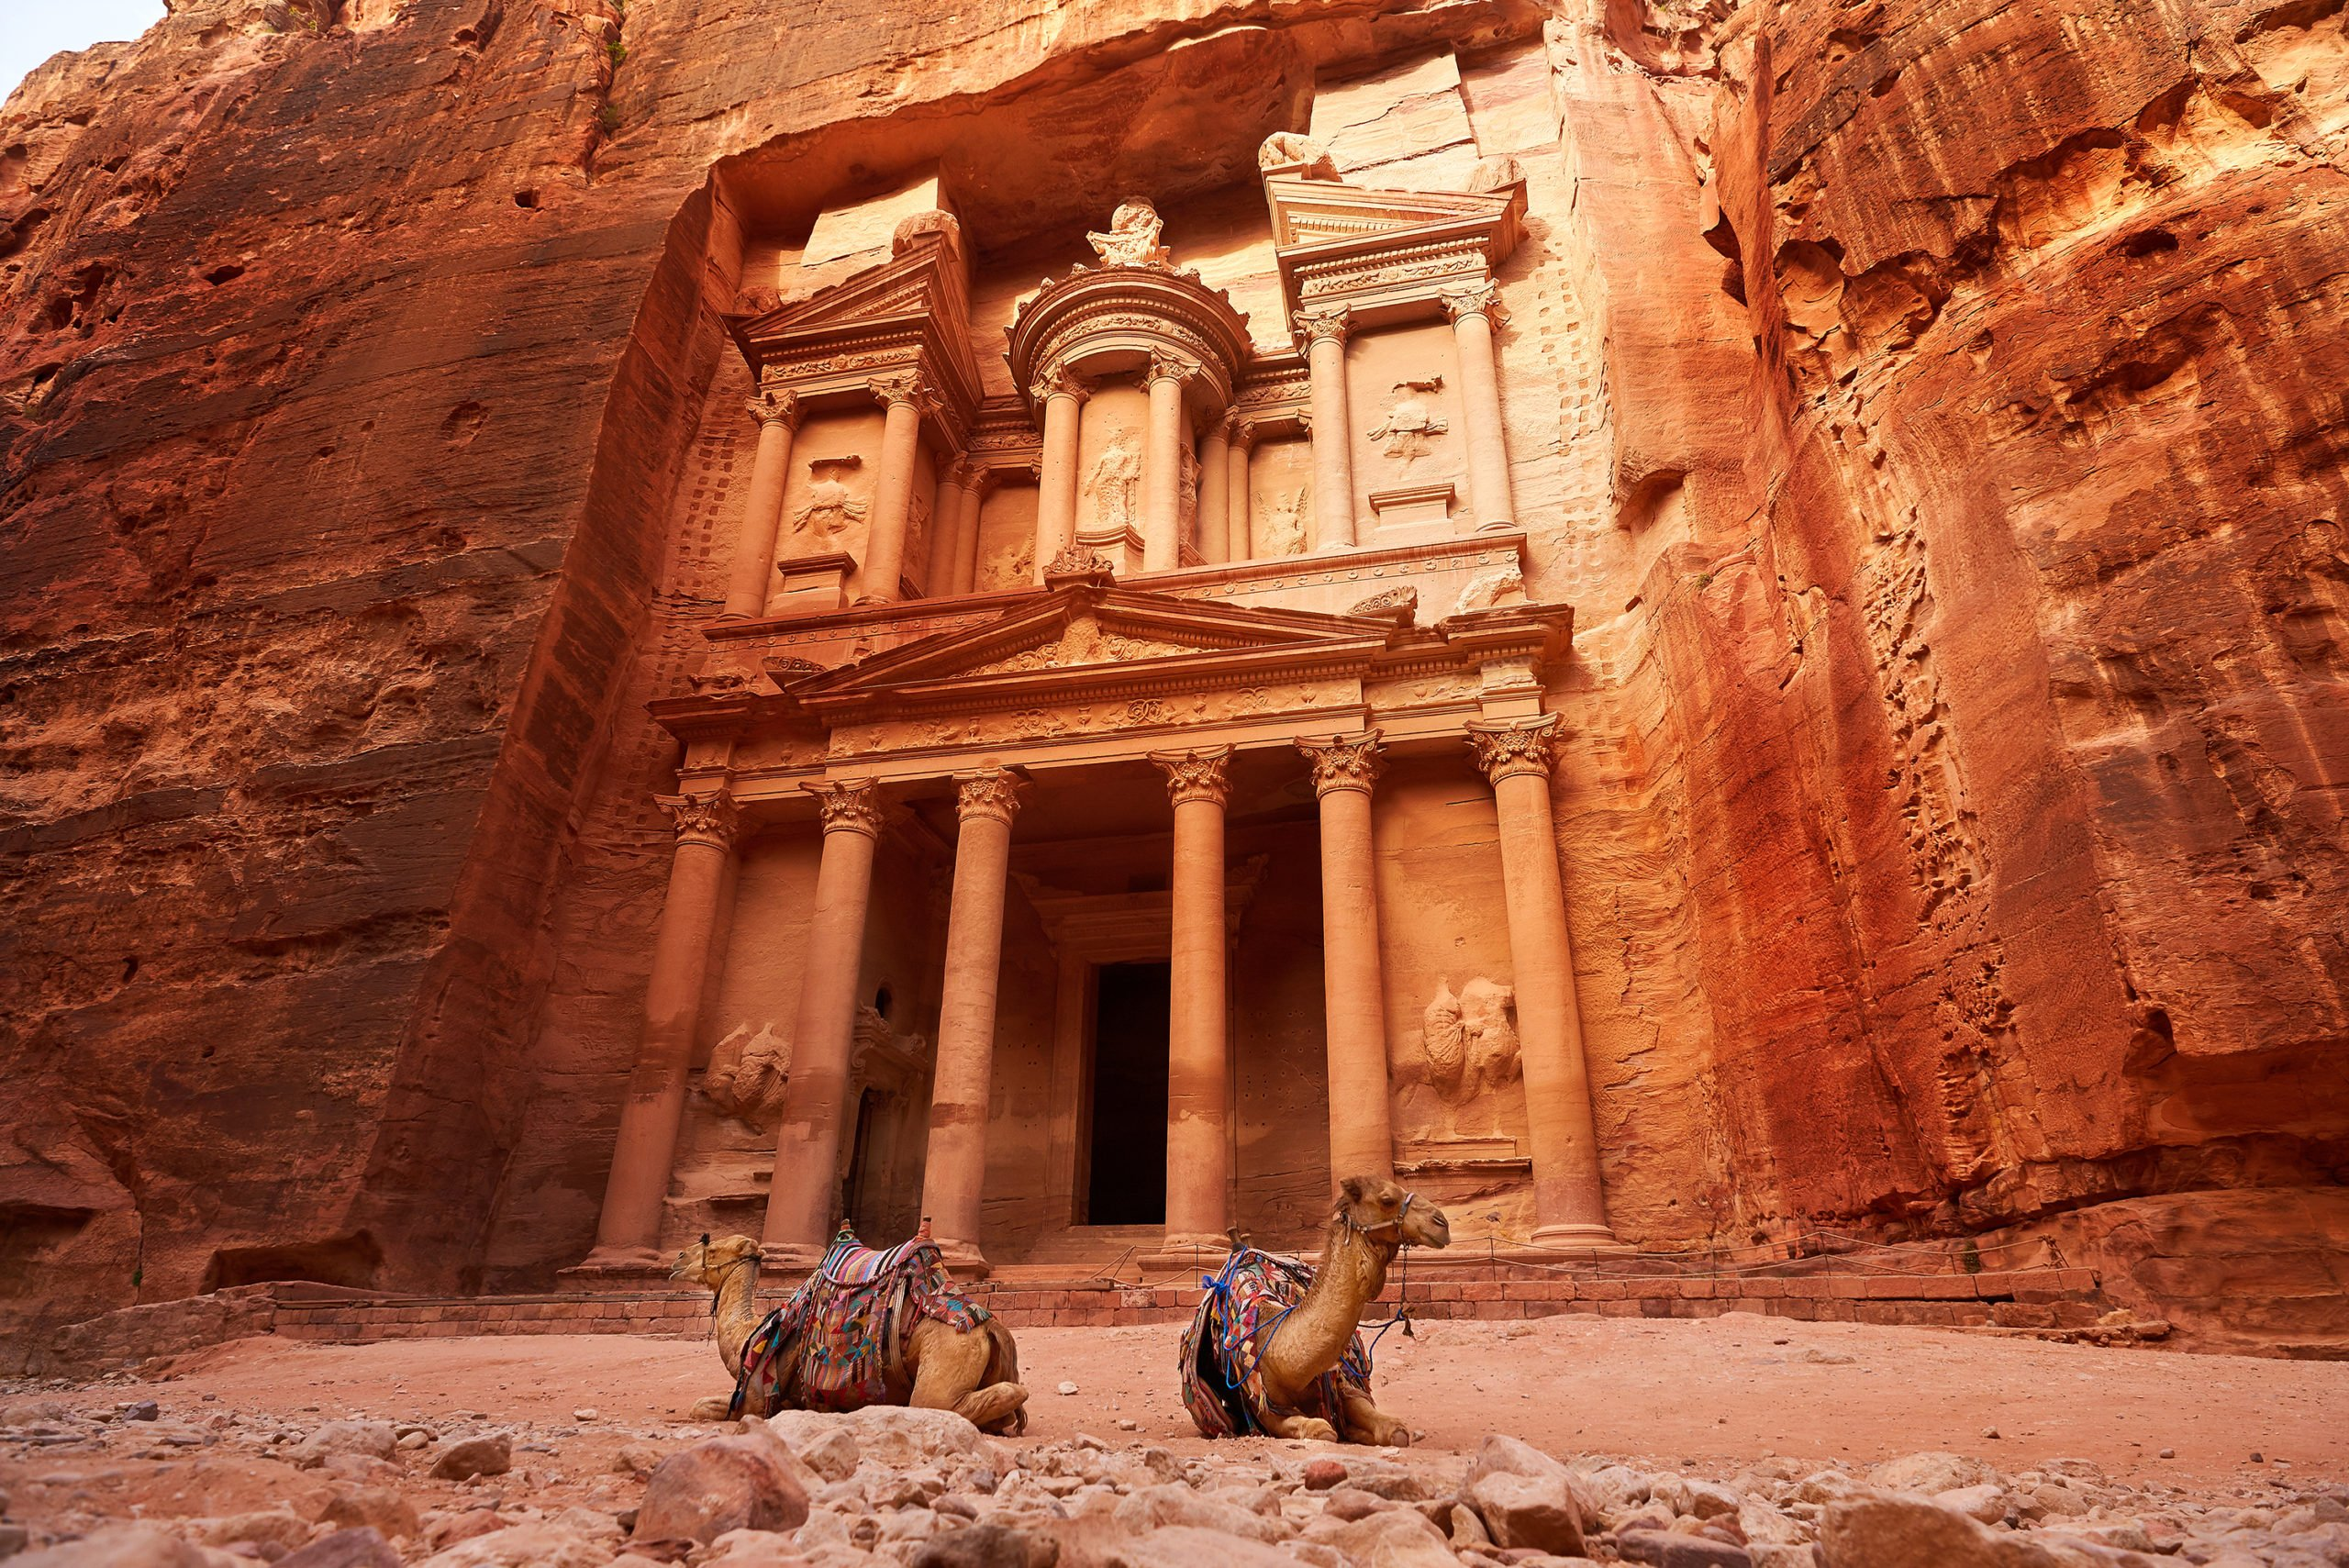 Visit The City Of Petra On The 10 Day Jordan, Dubai And Abu Dhabi Package Tour